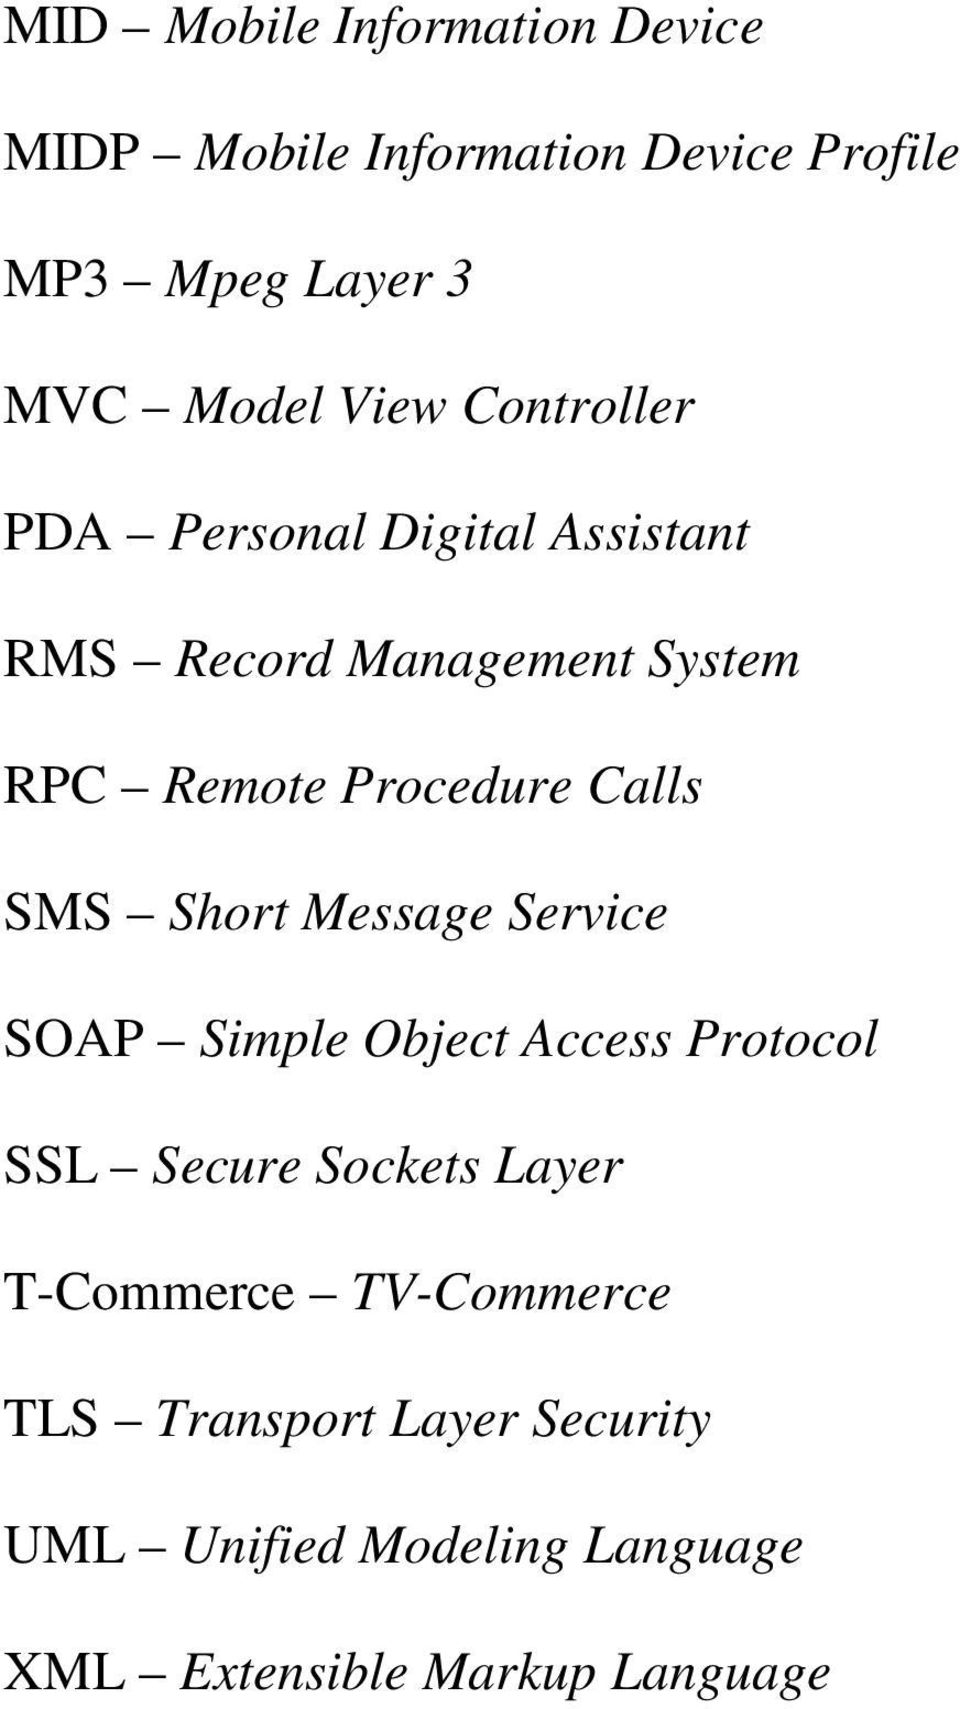 Calls SMS Short Message Service SOAP Simple Object Access Protocol SSL Secure Sockets Layer